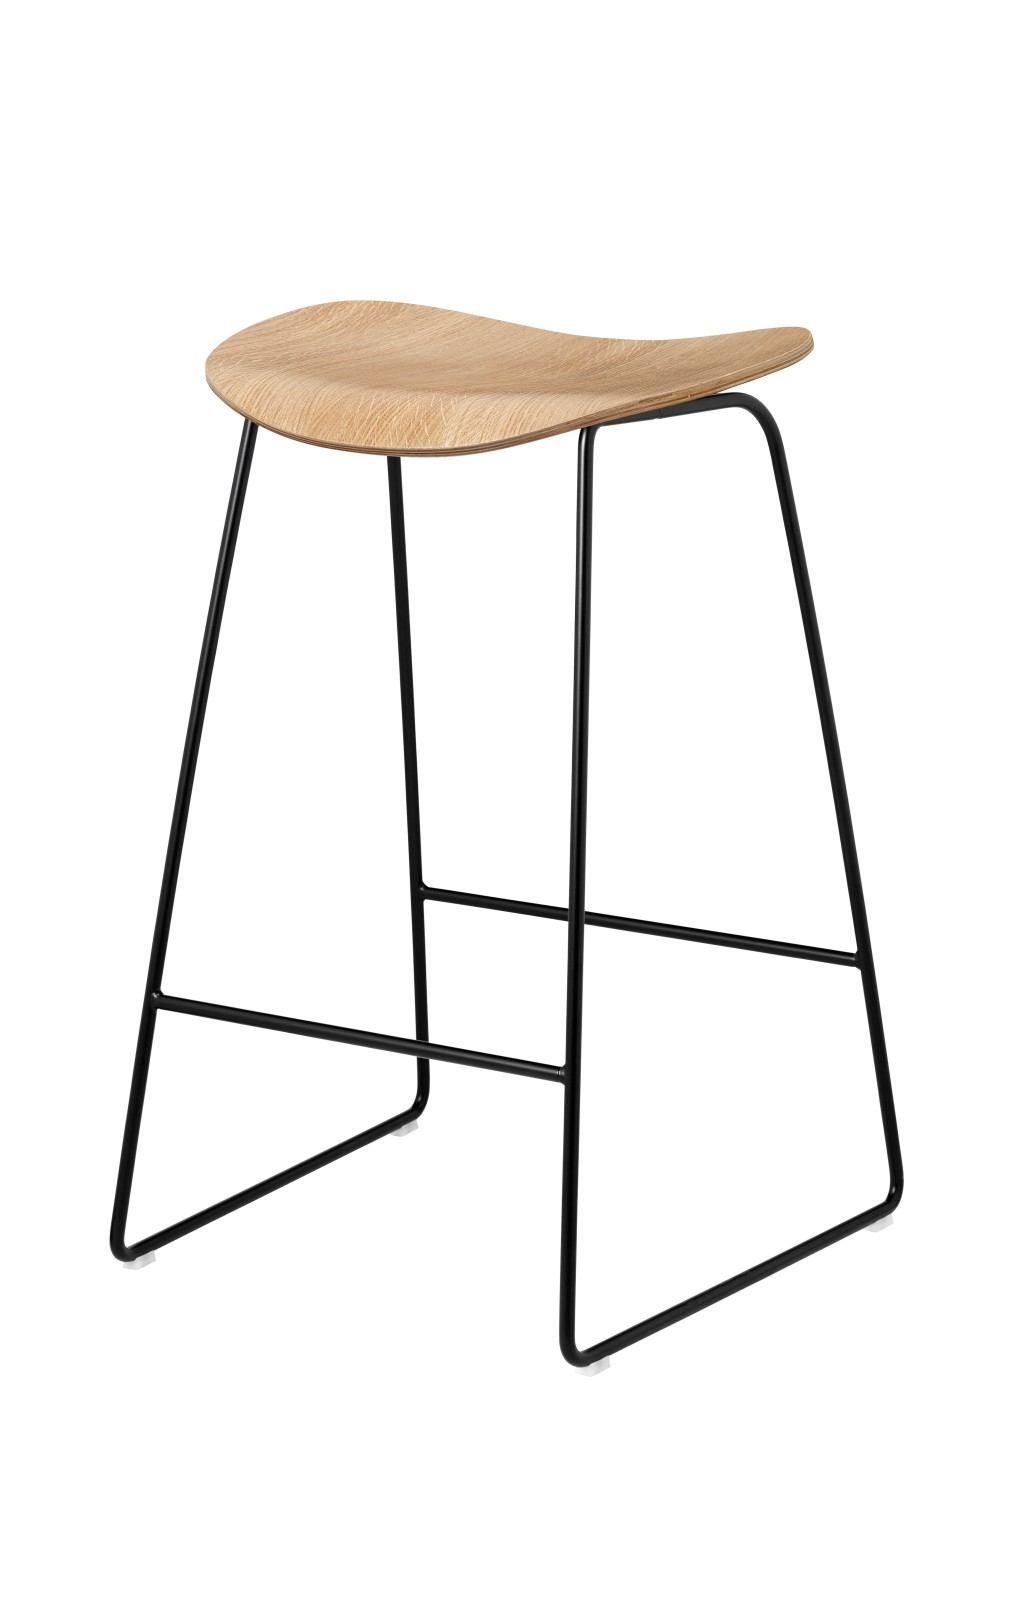 2D Counter Stool - Un-Upholstered, Sledge Base Gubi Wood Oak, Gubi Metal Black, Felt Glides